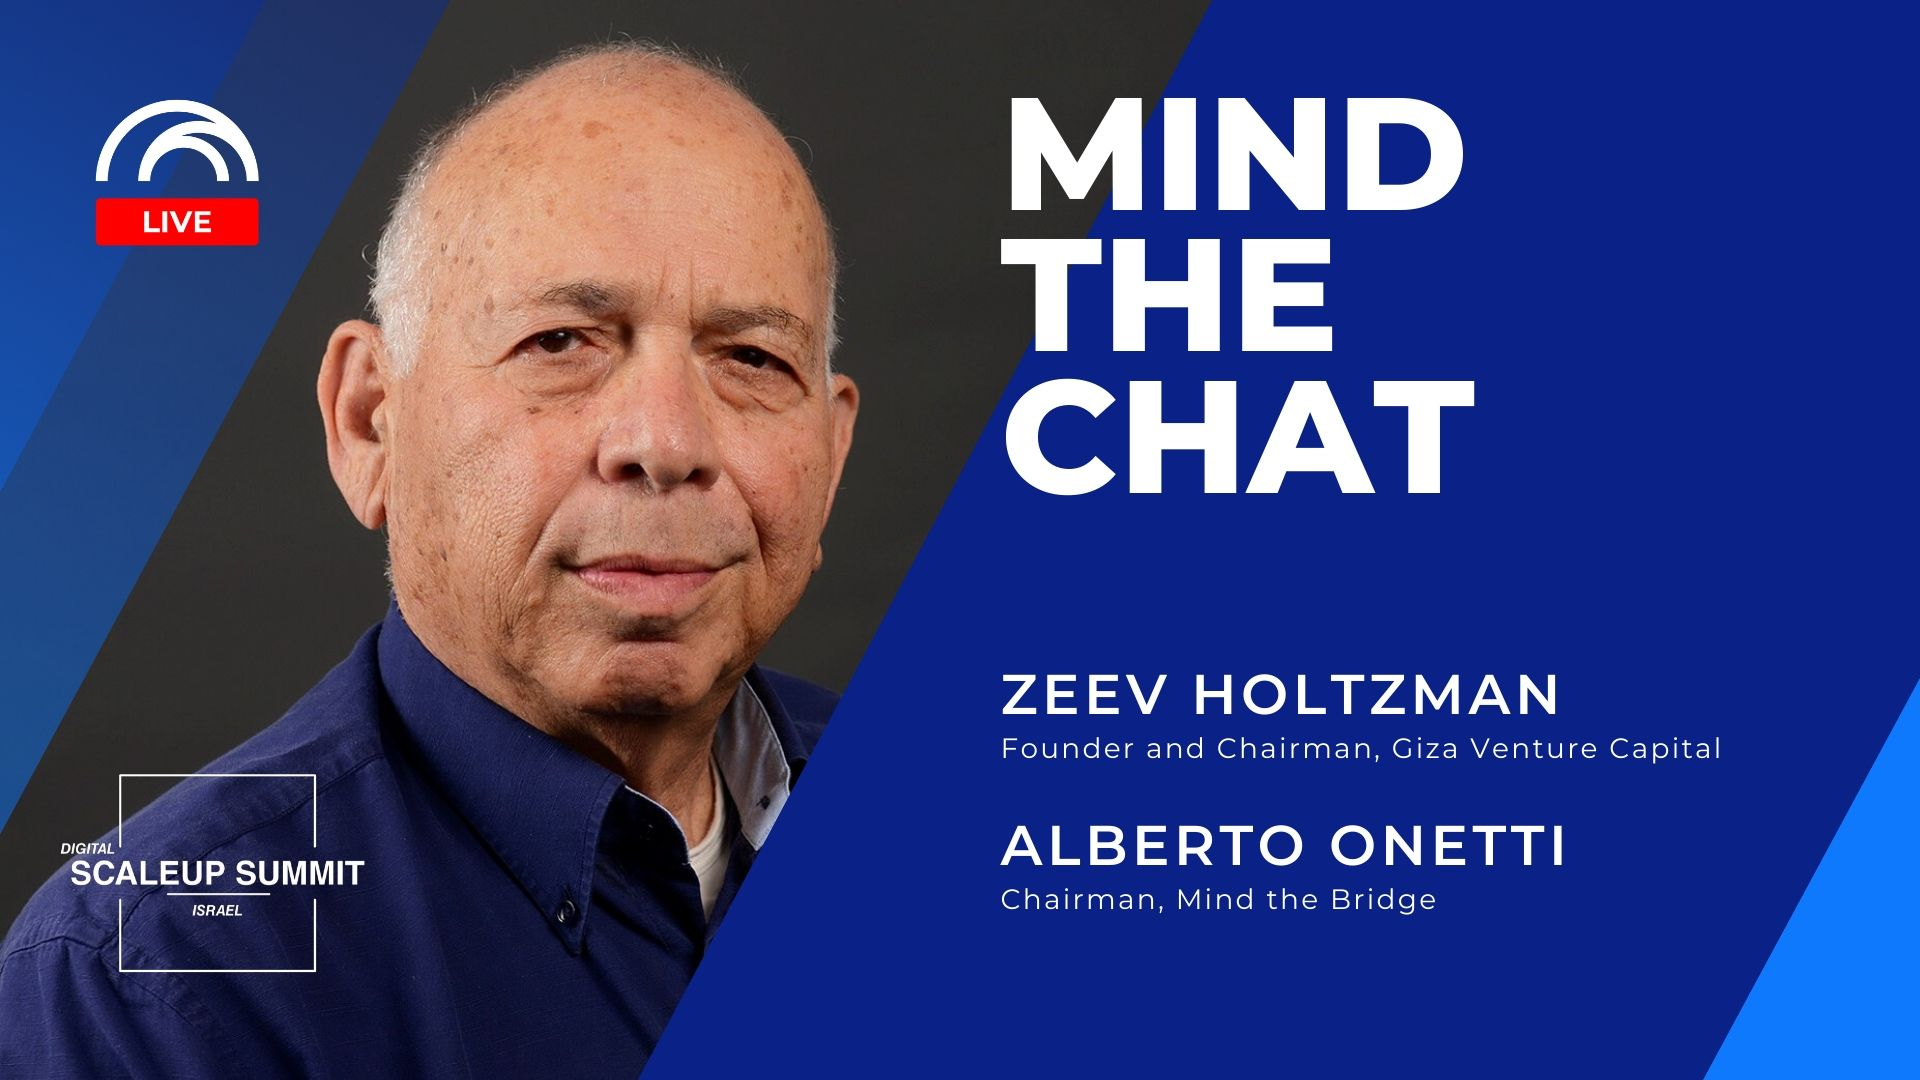 Mind the Chat with Zeev Holtzman-Giza Venture Capital